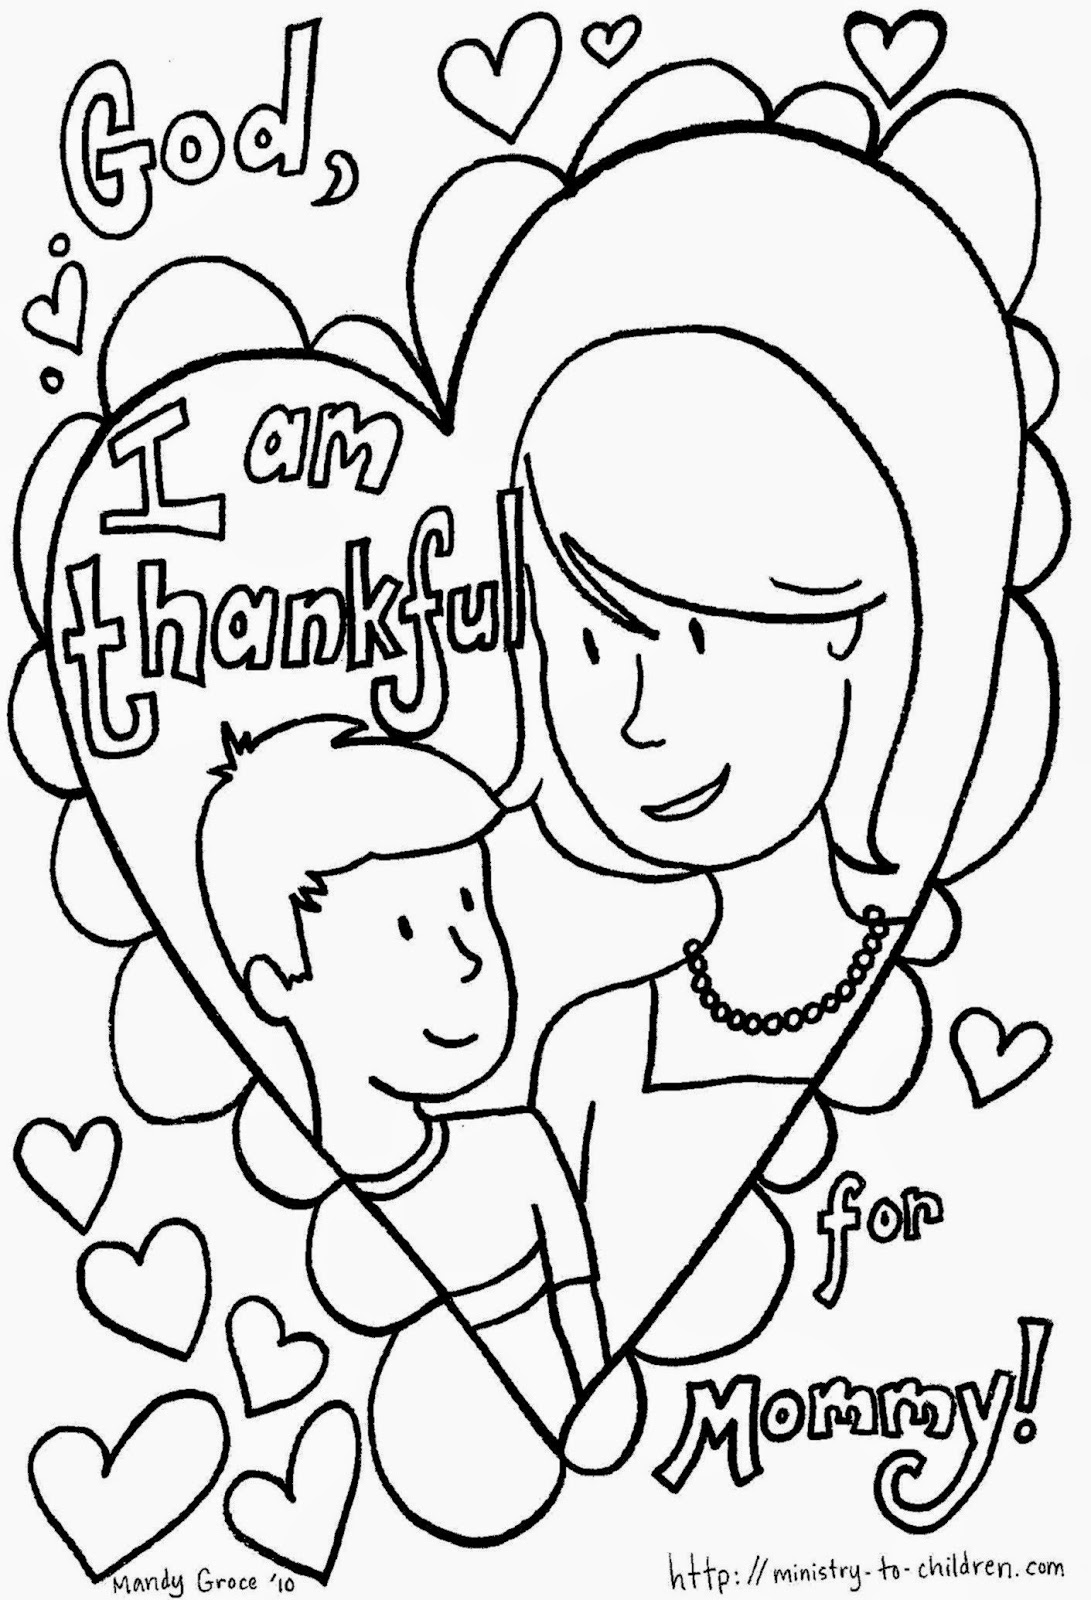 Best aunt ever coloring pages coloring pages for Coloring pages for aunts